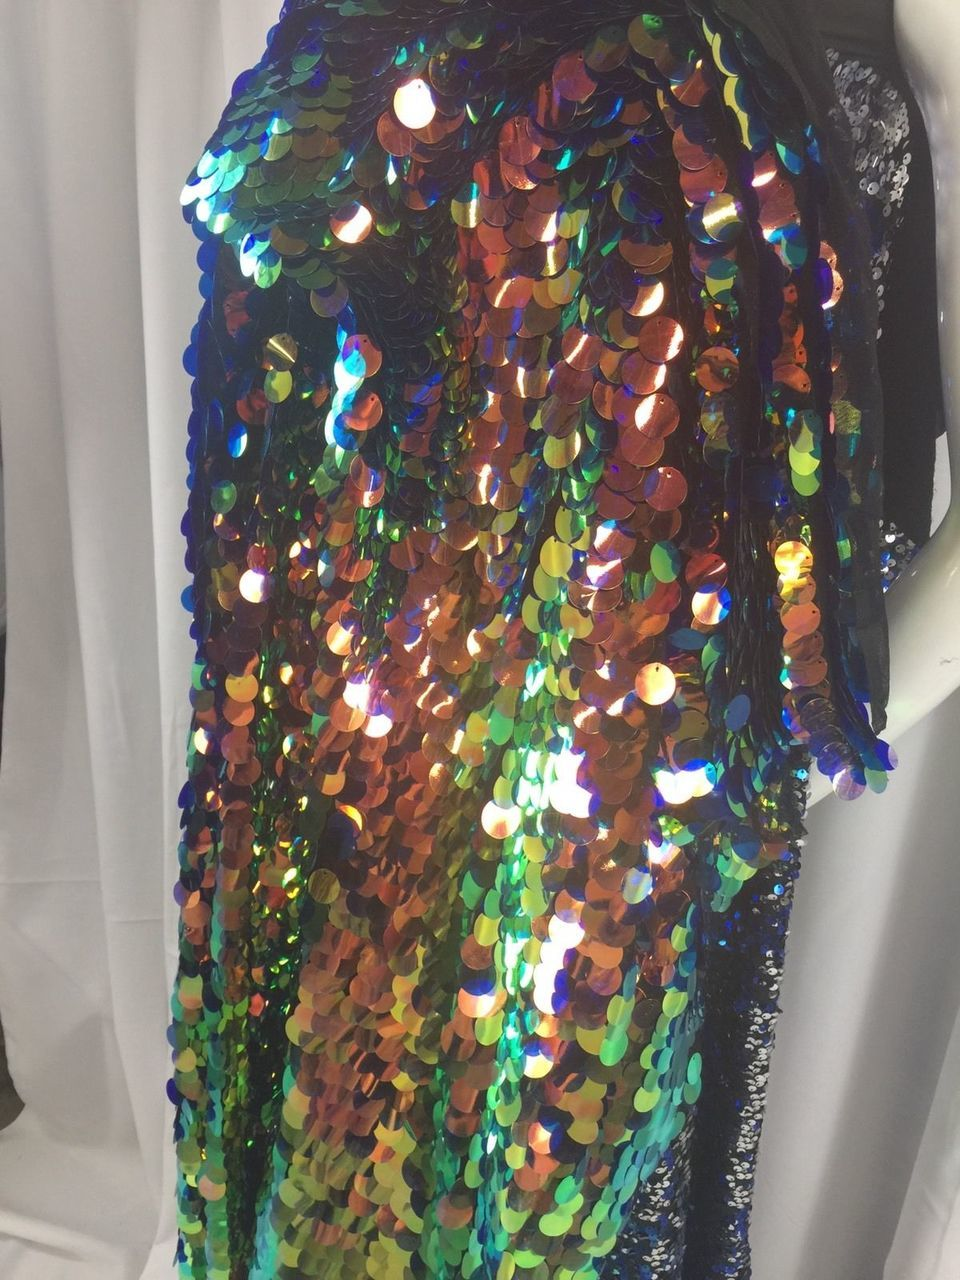 Sequins Fabric By The Yard Multi-Color Hologram Shiny For Dresses & Decorations - KINGDOM OF FABRICS